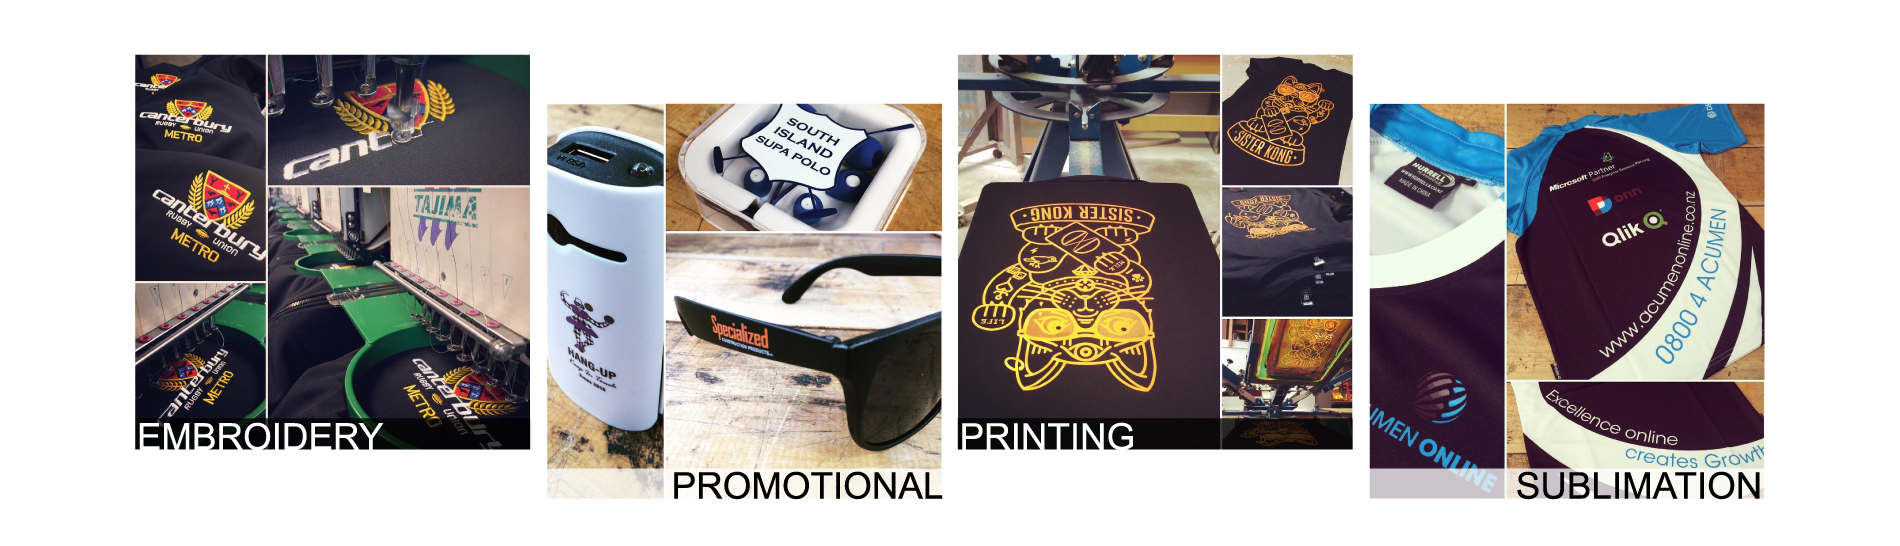 Embroidery | Promotional Products | Screen Printing | Sublimation Teamwear | Christchurch | New Zealand